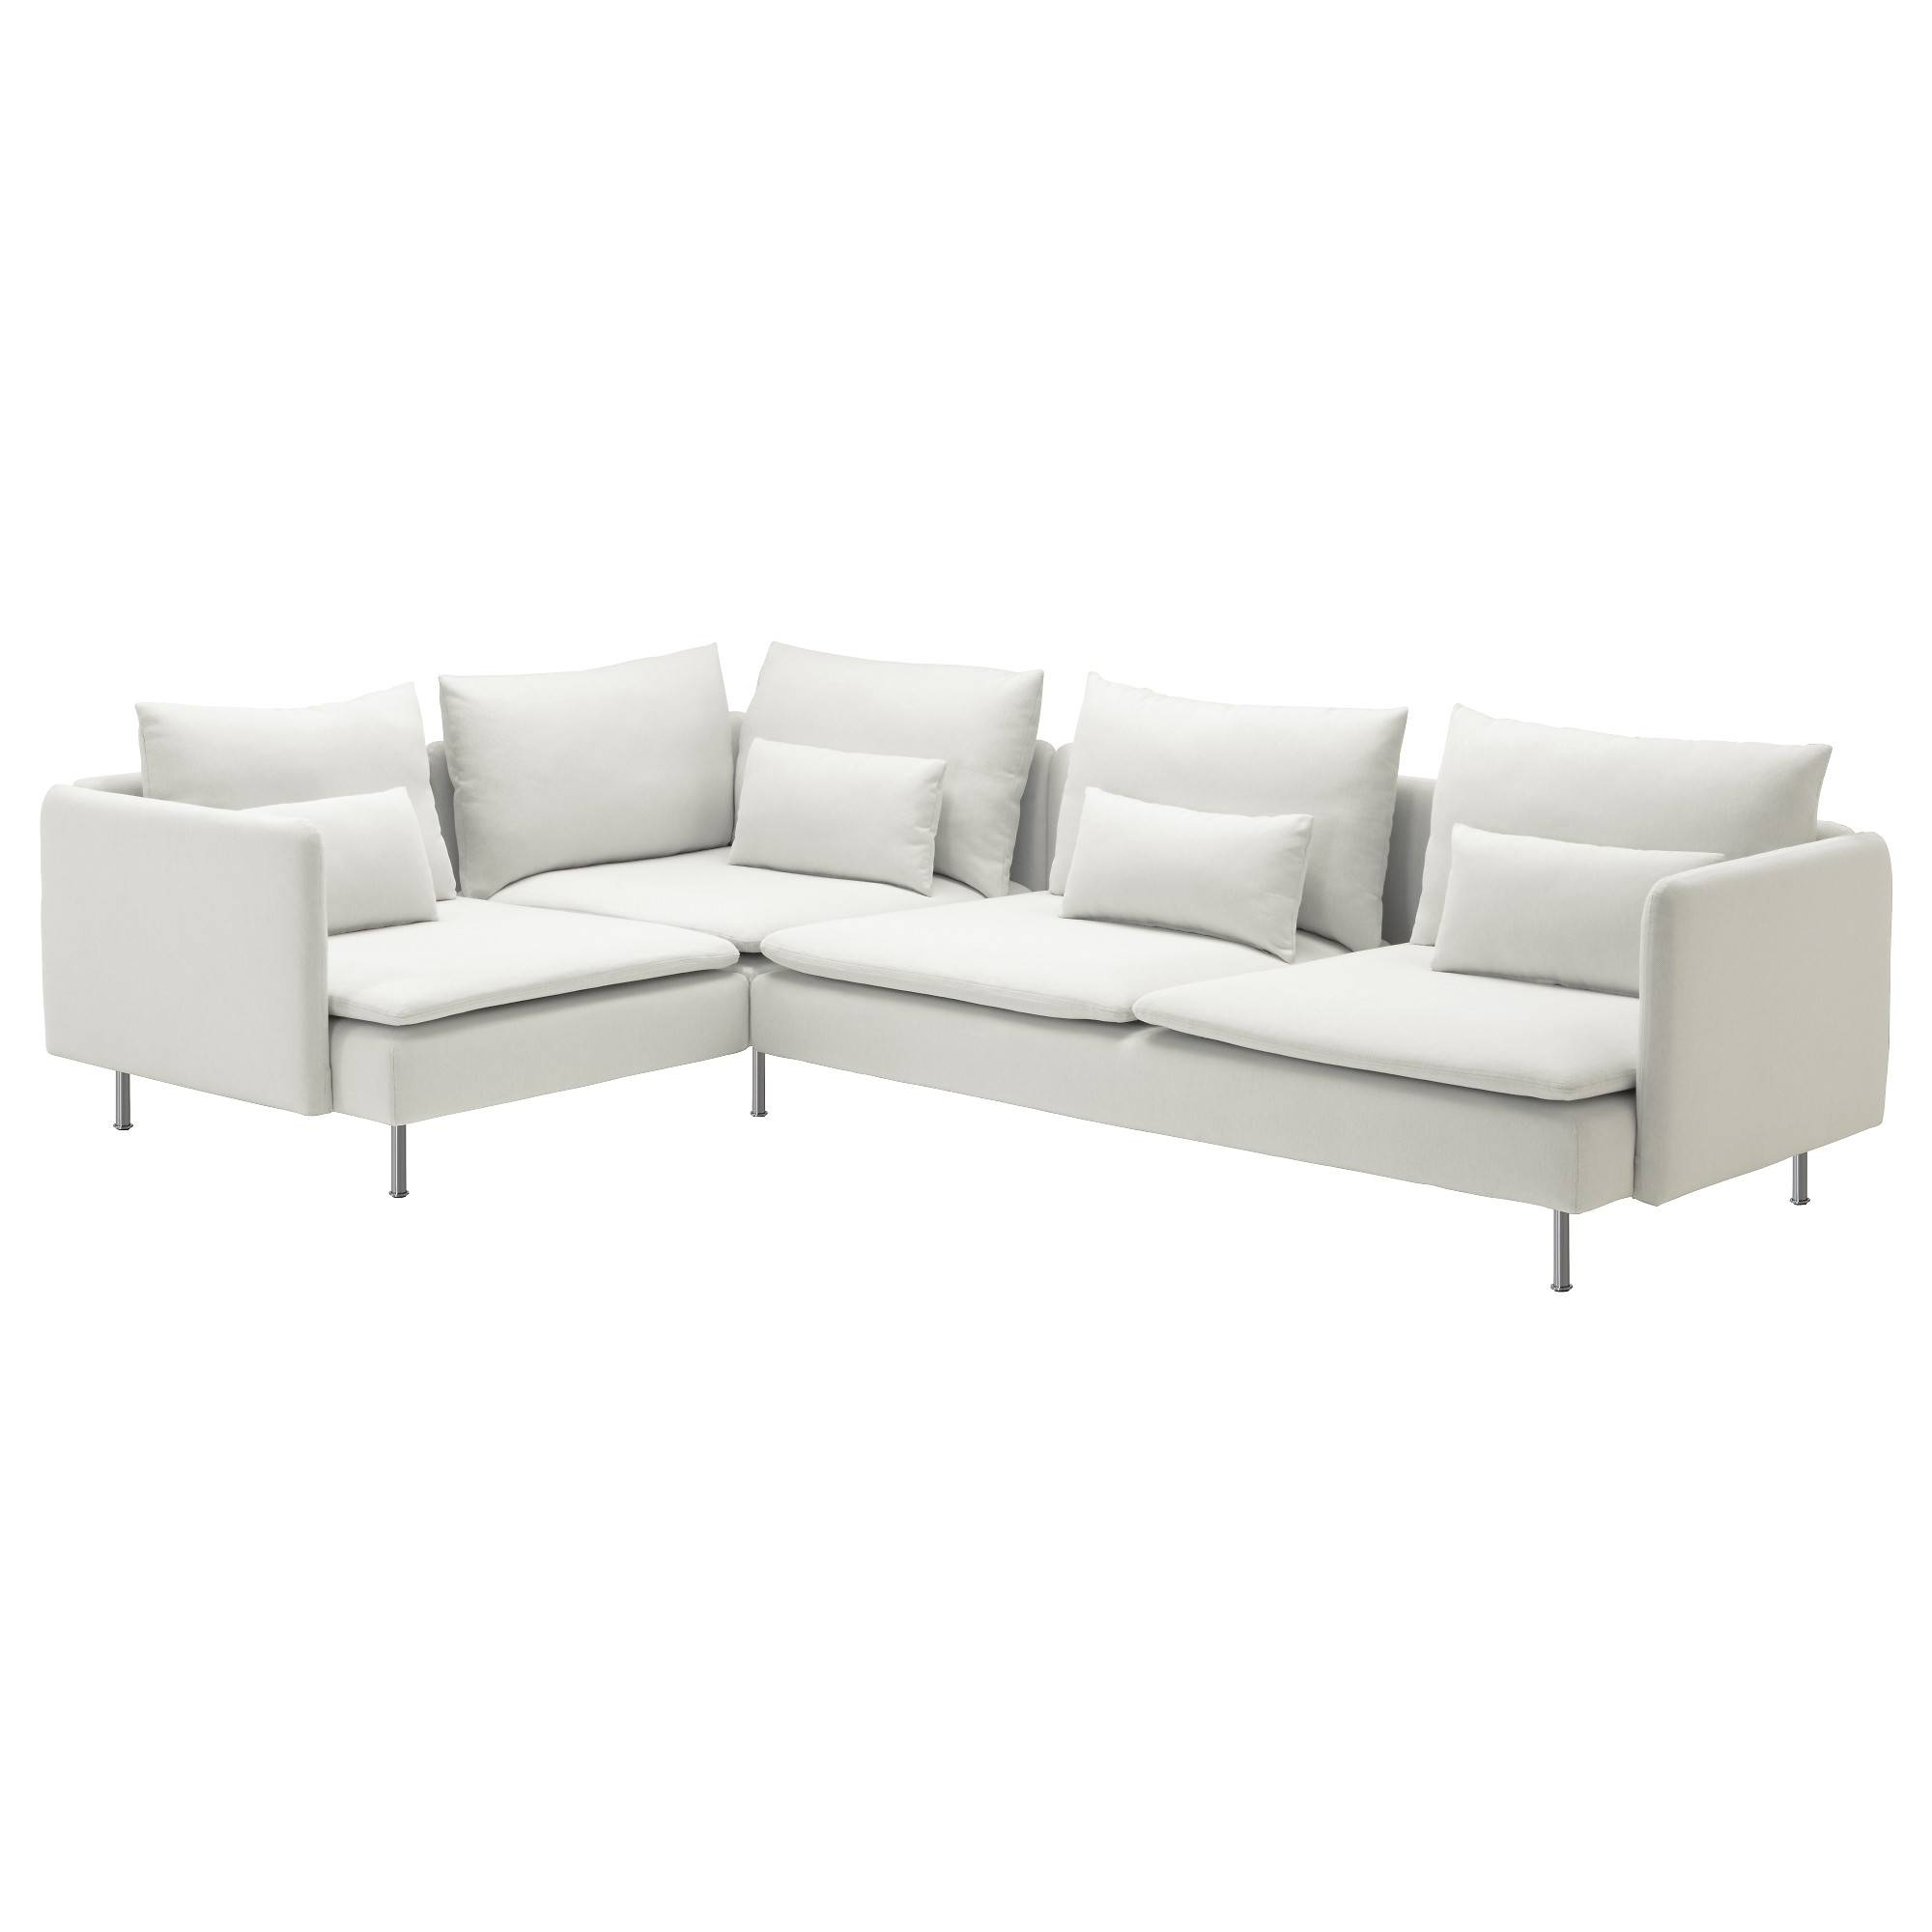 Sectional Sofas & Couches - Ikea pertaining to 45 Degree Sectional Sofa (Image 21 of 30)